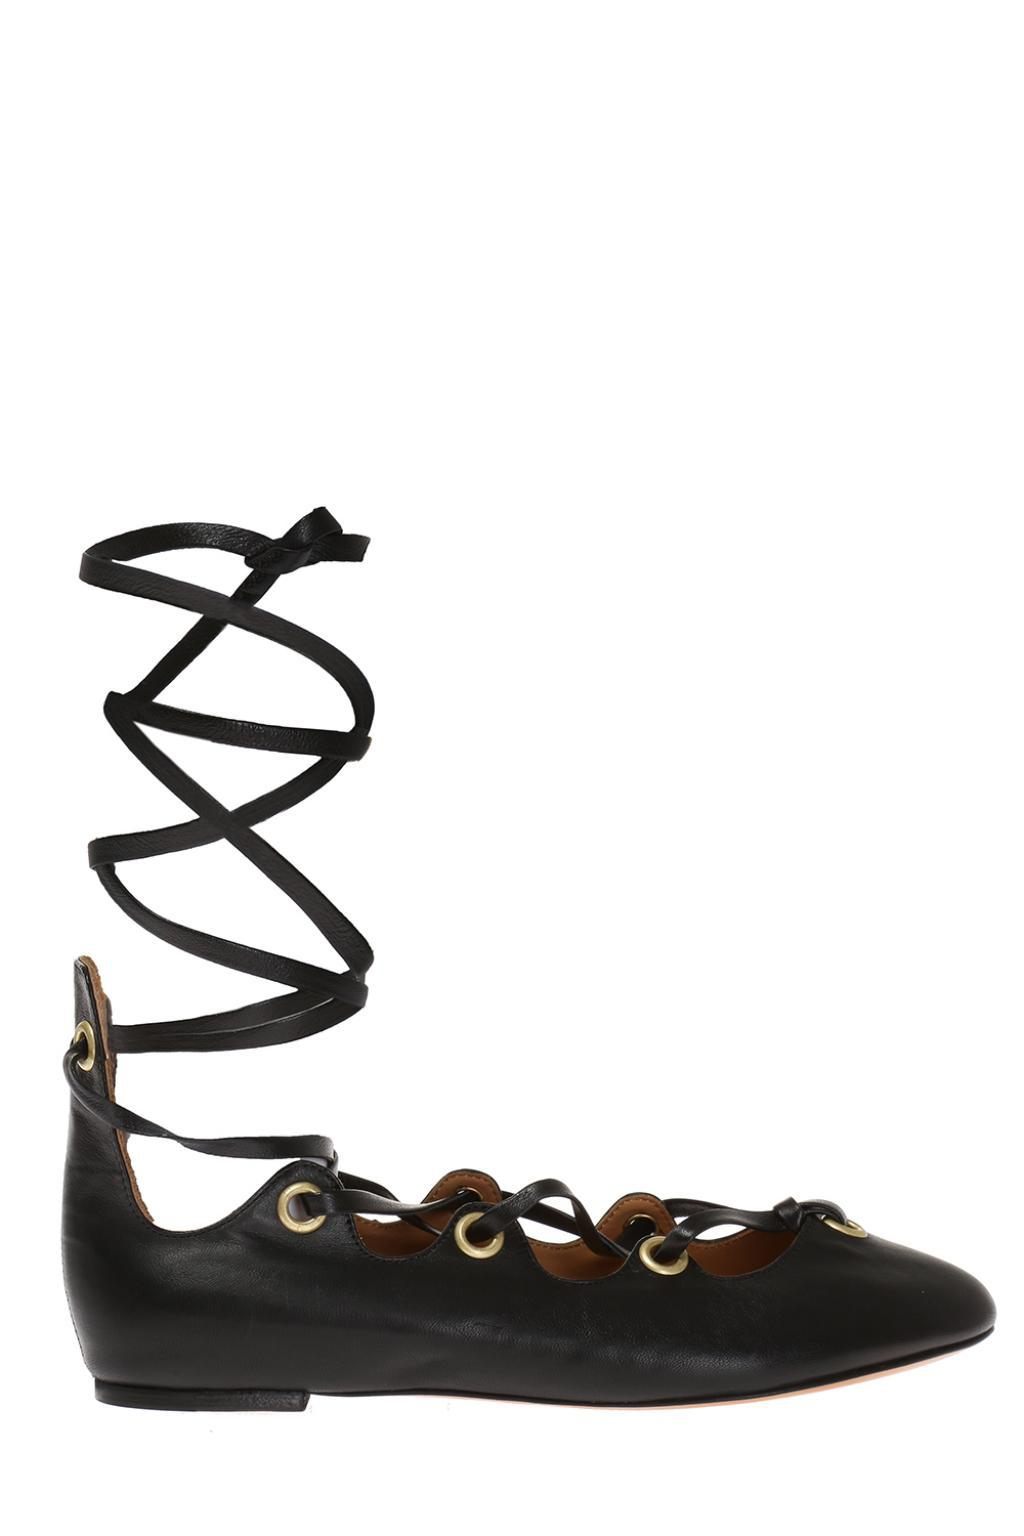 Isabel Marant Black Leomia Lace-Up Ballerina Flats